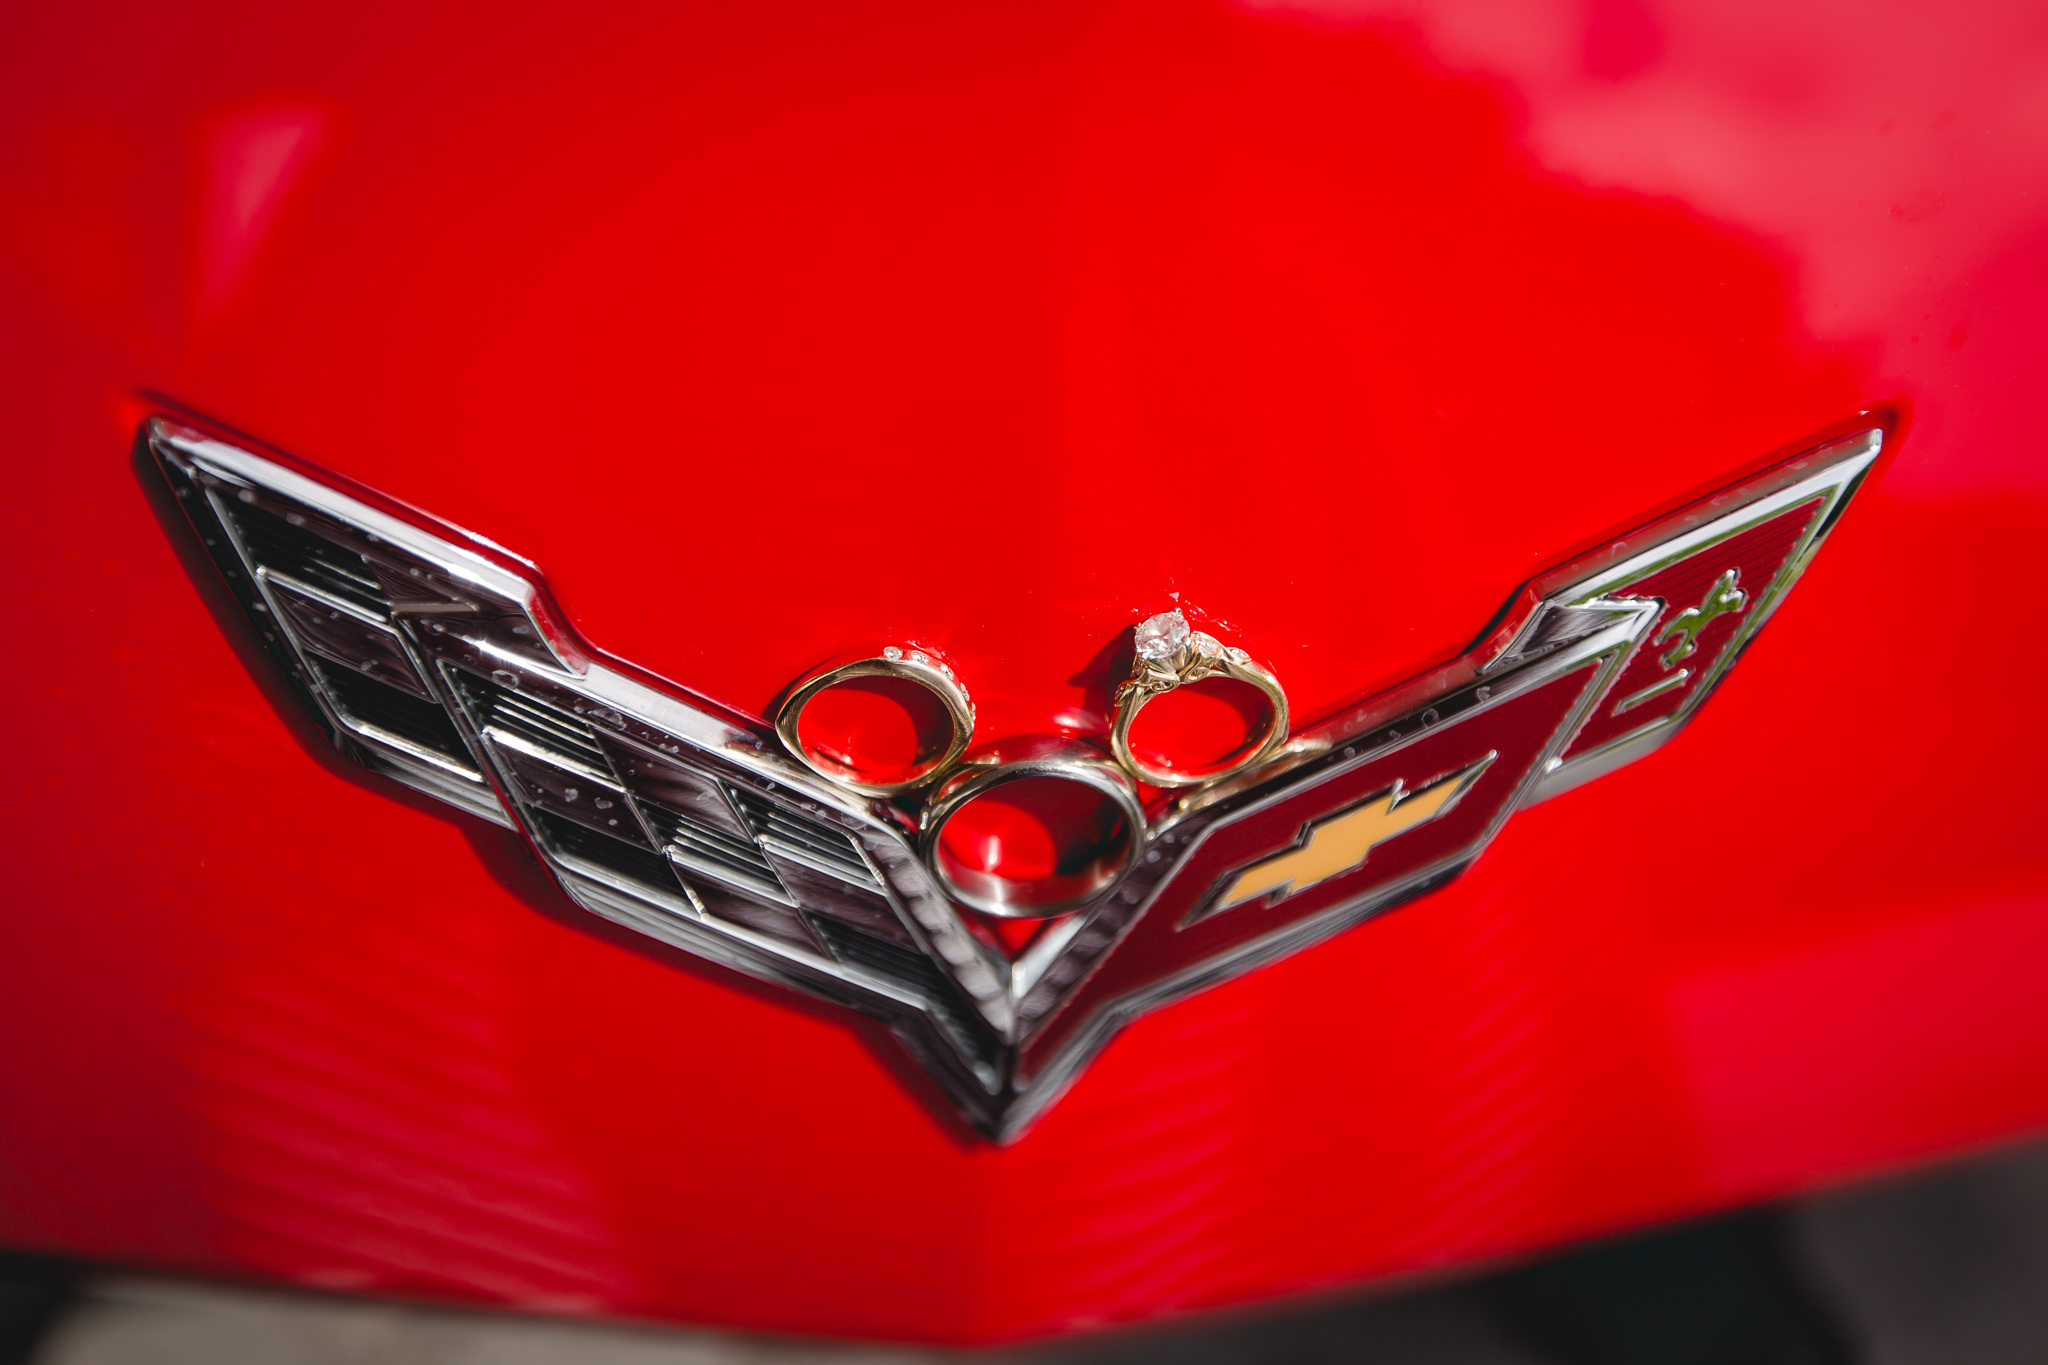 Wedding rings on red Corvette logo at Shannopin Country Club